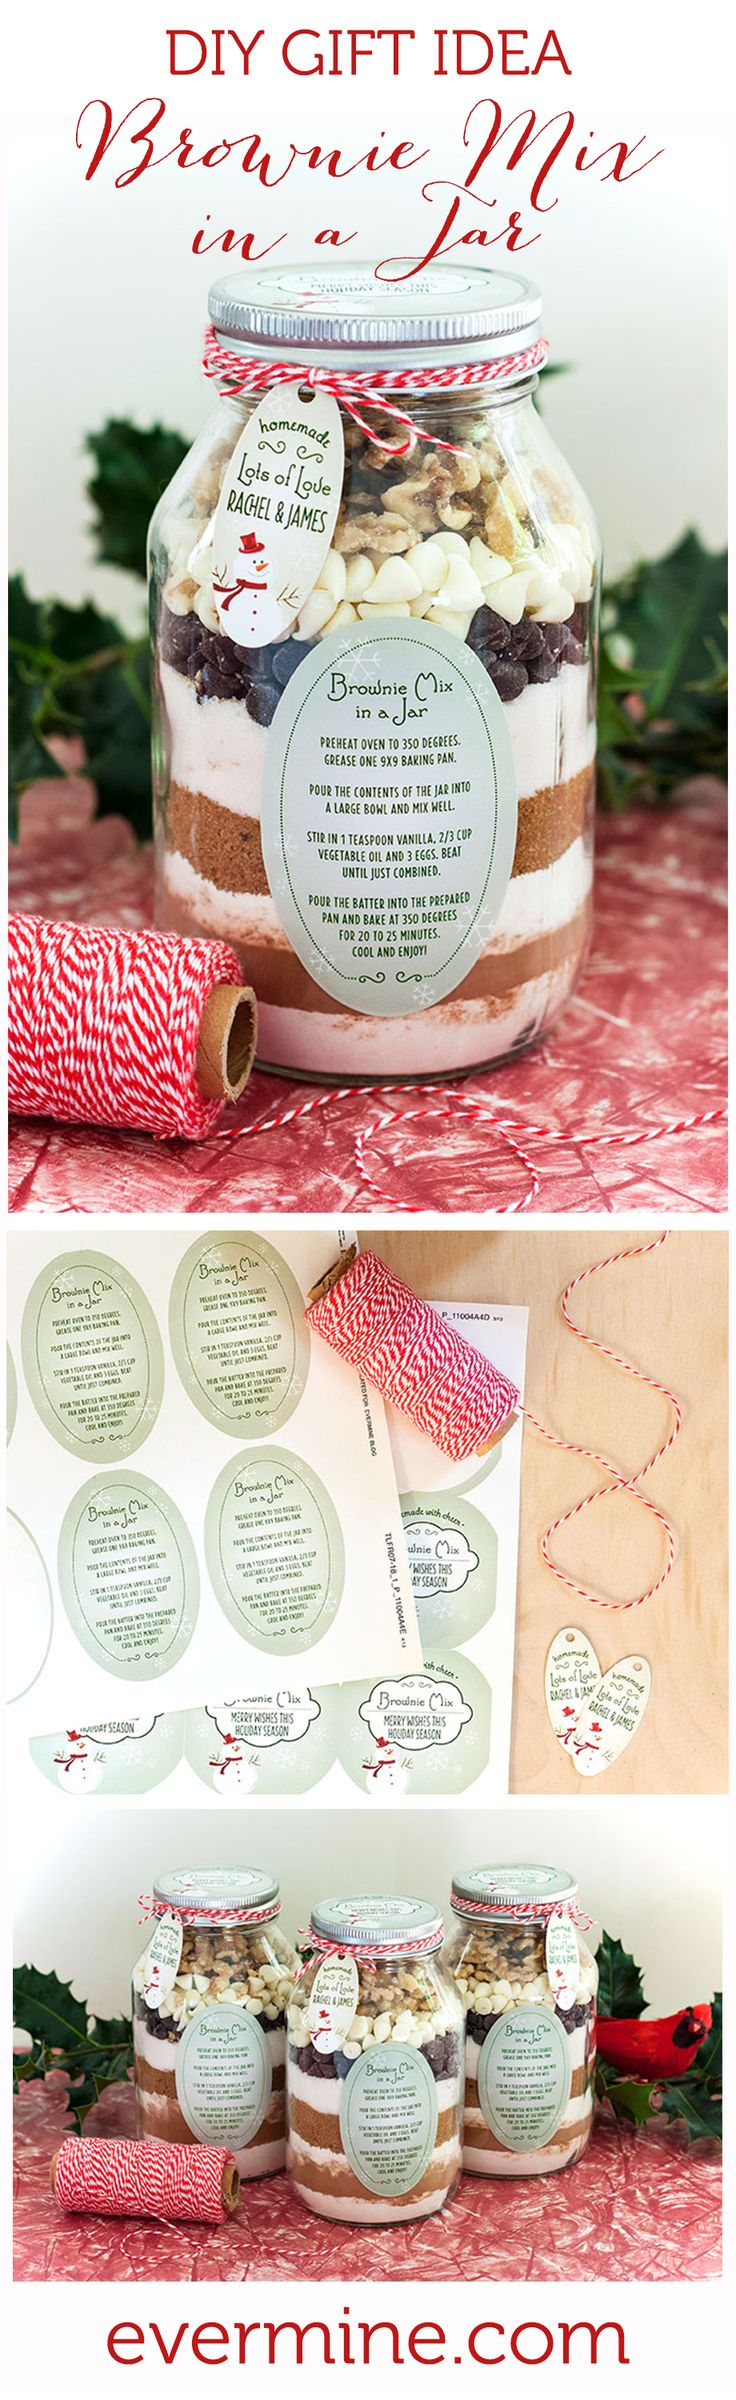 DIY Christmas Gift Idea: Brownie Mix in a Jar. Great gift idea for teachers, neighbors, family and friends.   Evermine Occasions   Evermine.com